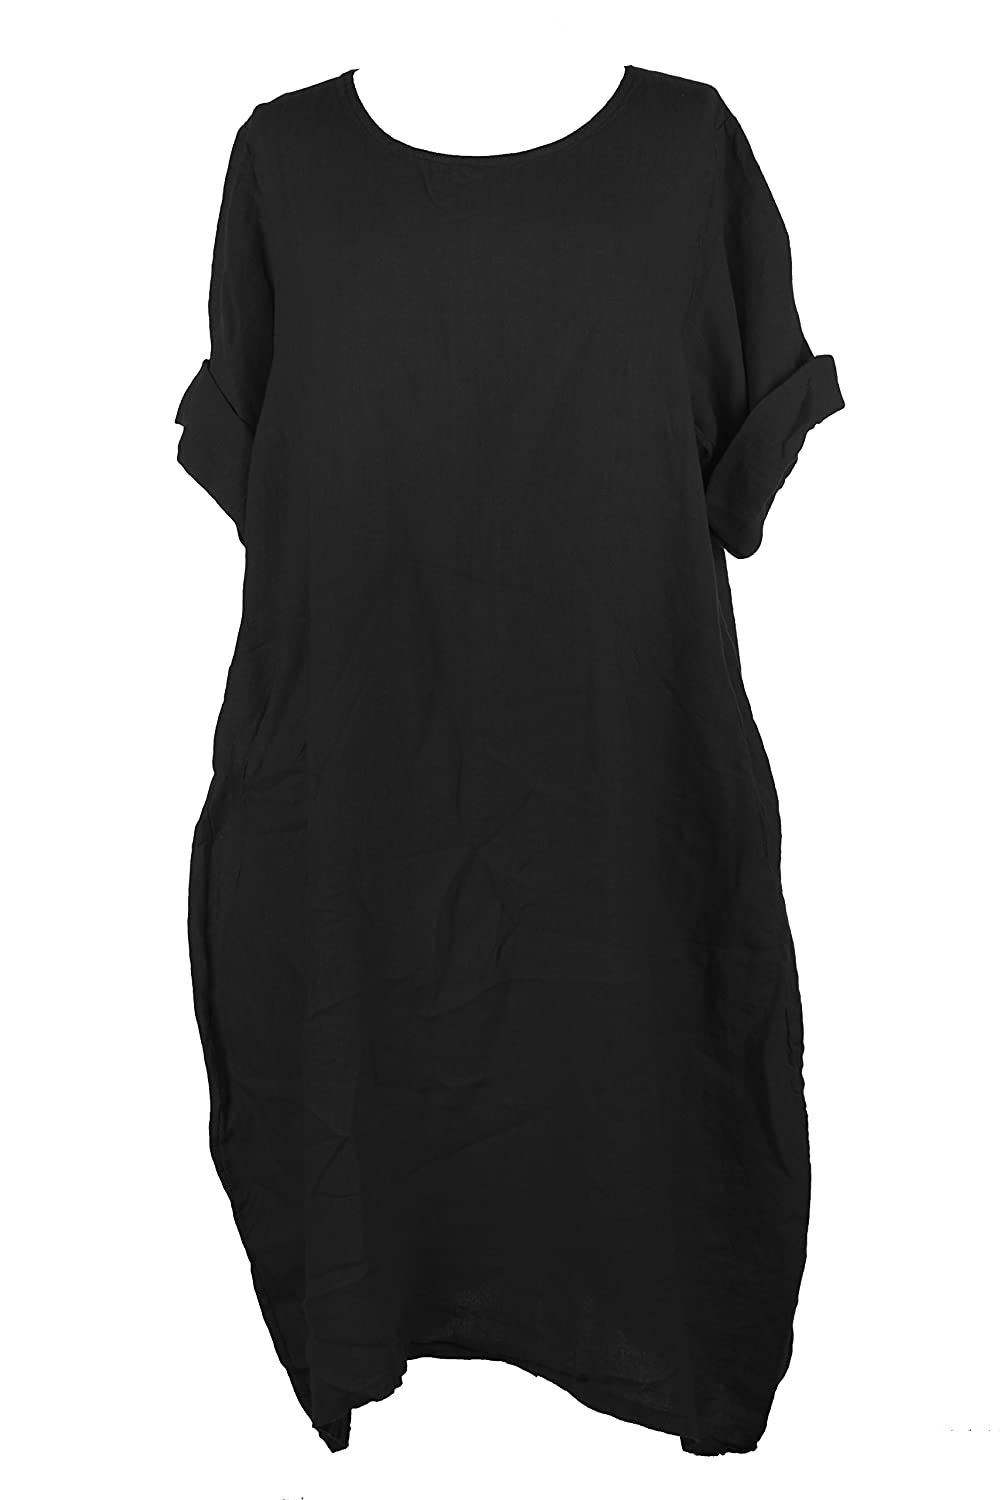 e5d970f285 Scoop neck. Quirky pockets at the front on both sides. Premium linen dress  has a flattering tulip shape which gives a stylish fit